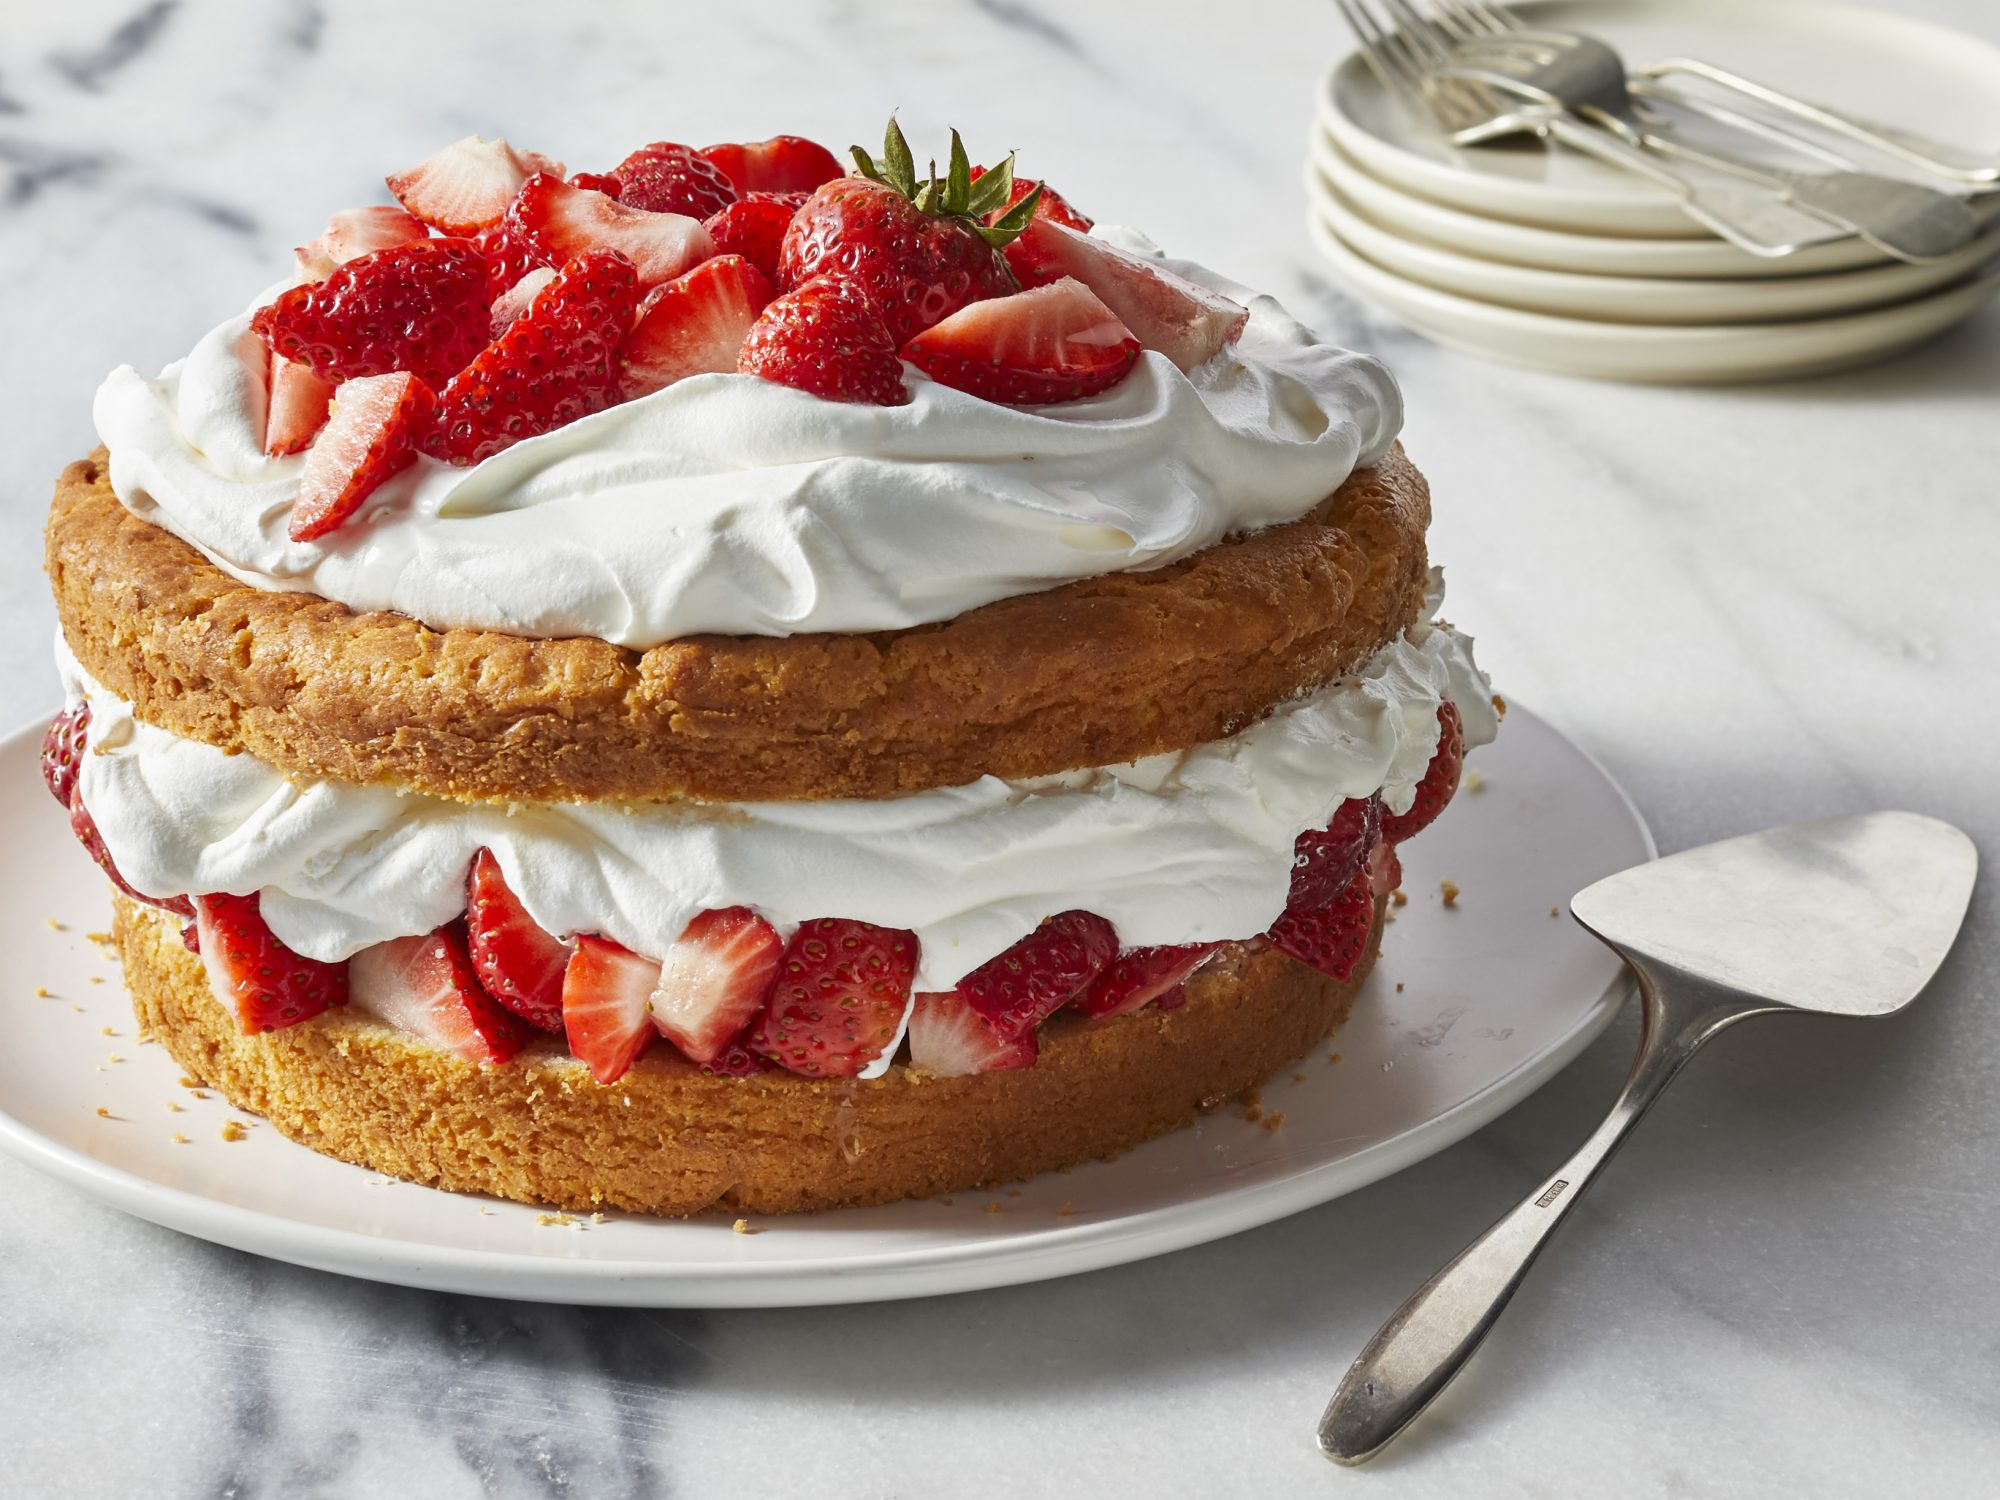 Strawberry Shortcake for a Crowd